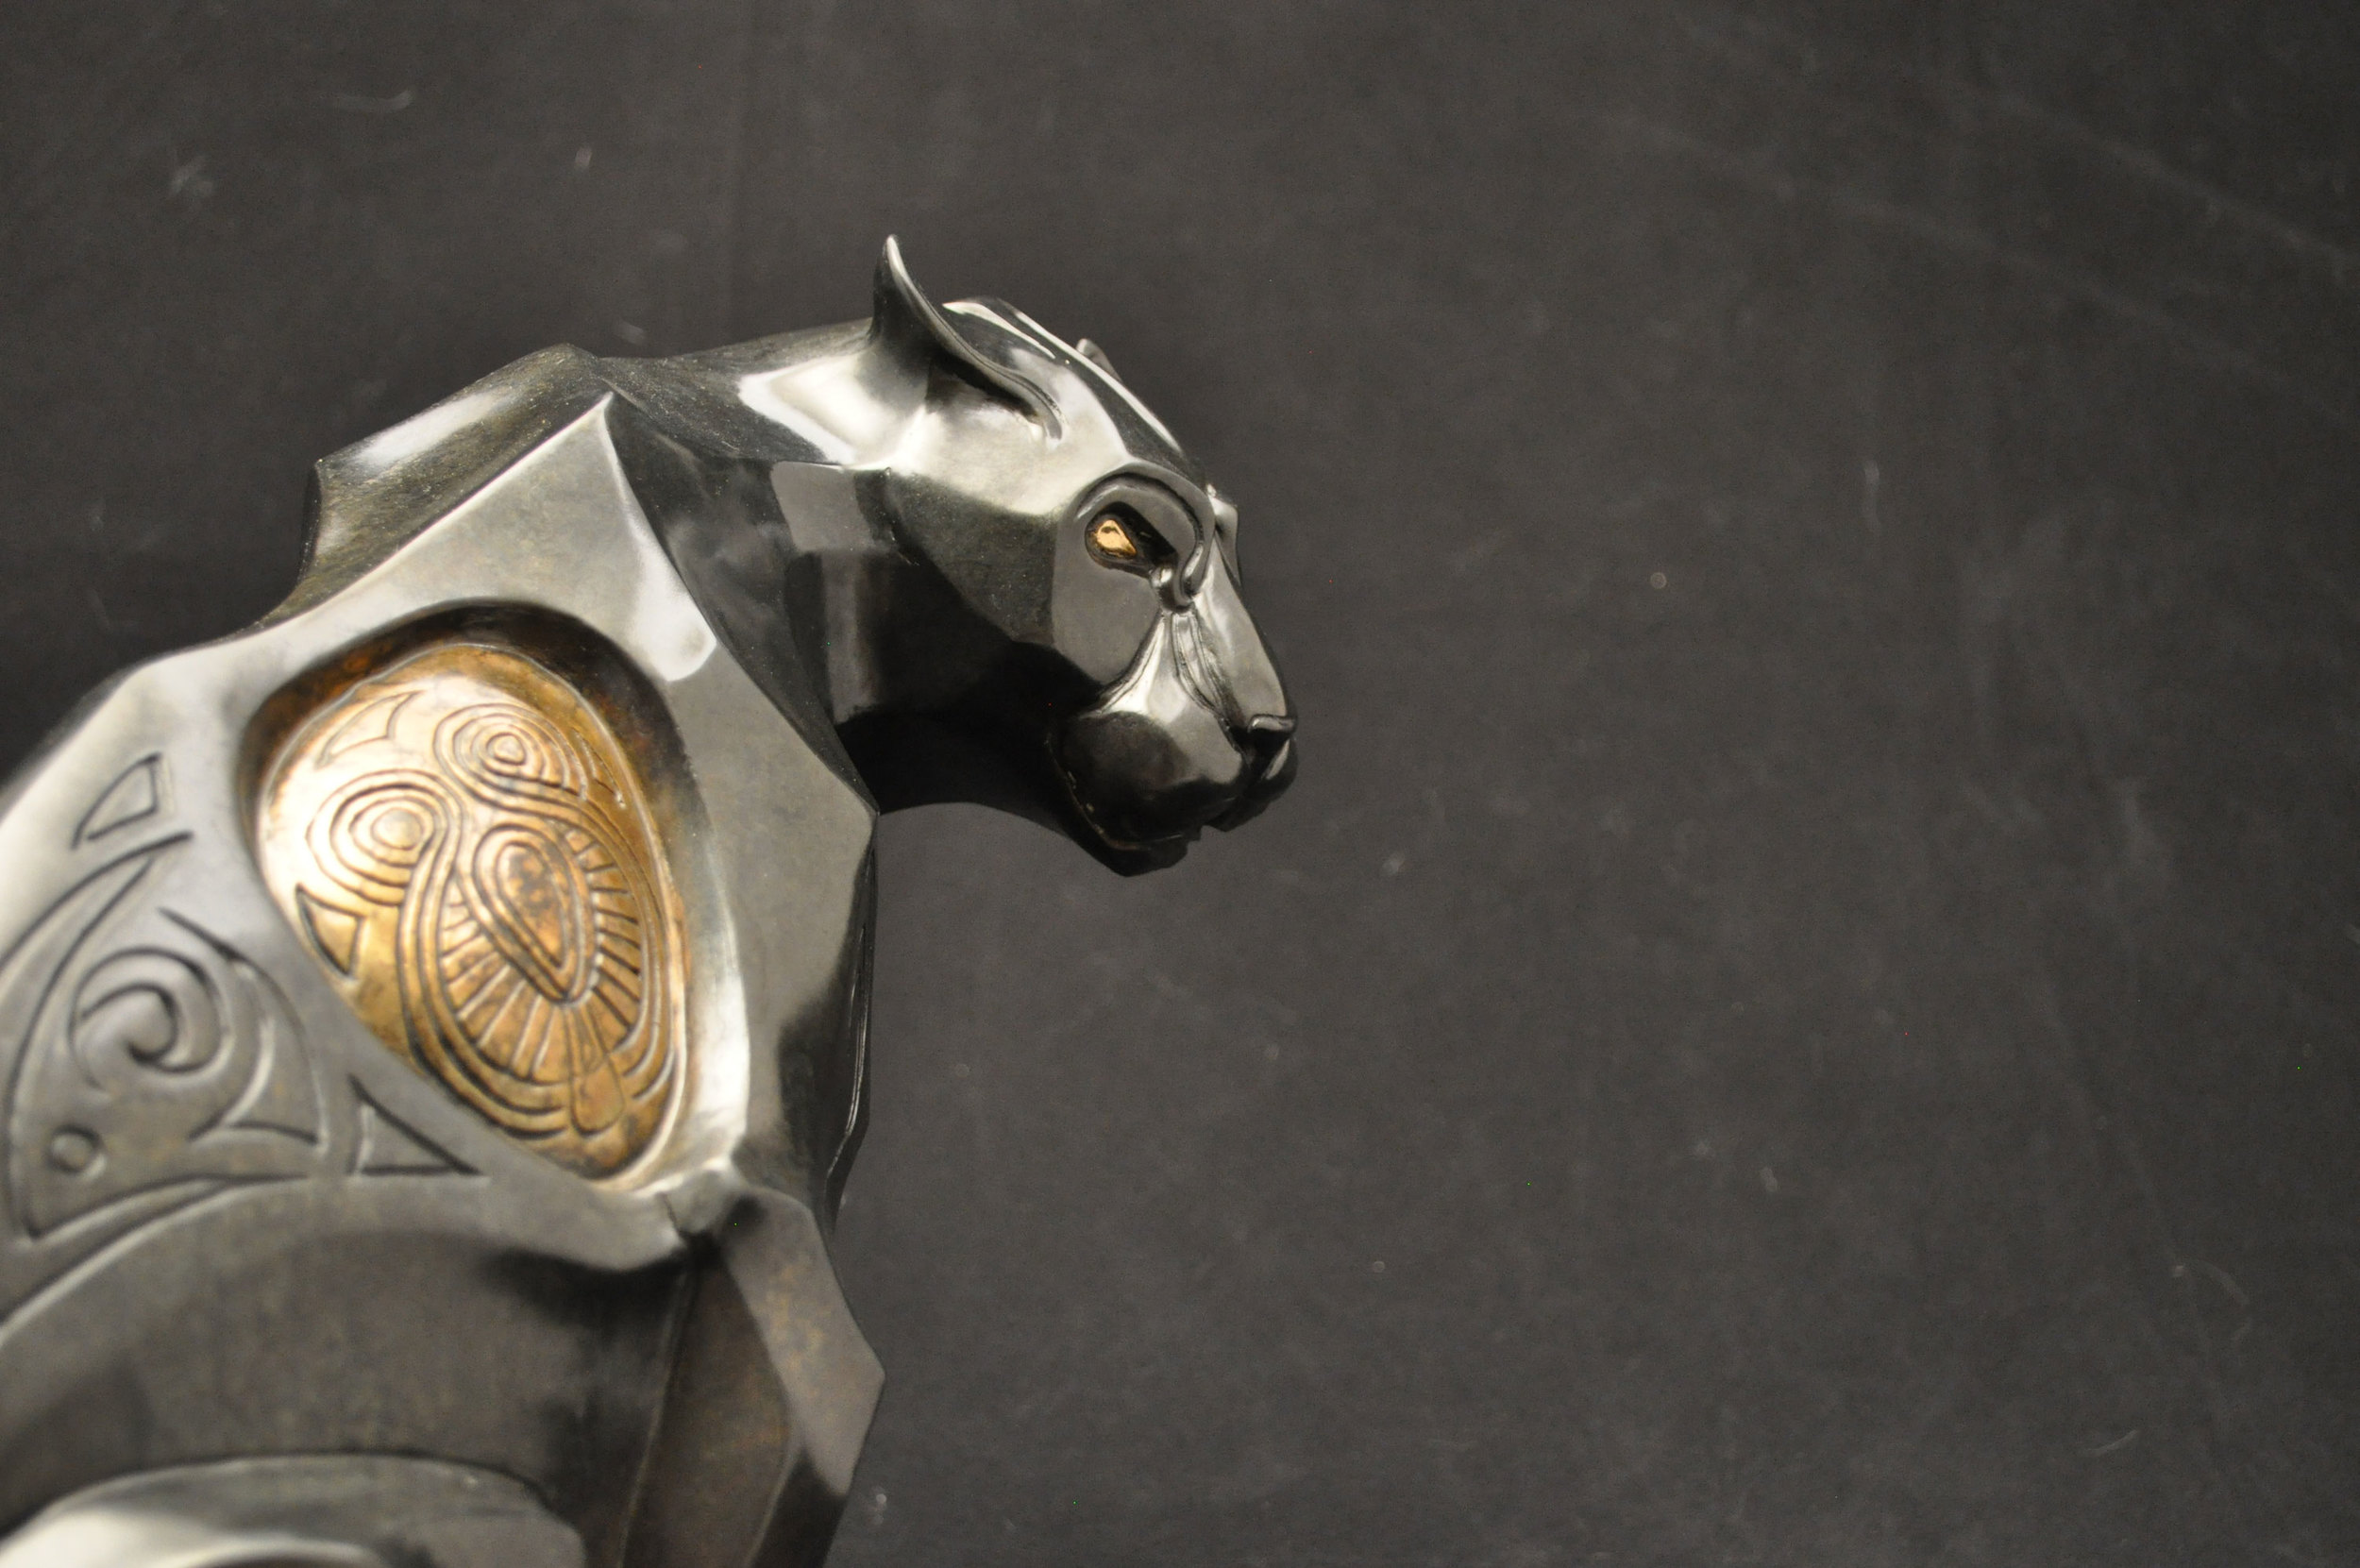 bronze-panther-cat-sculpture-john-maisano-5.jpg